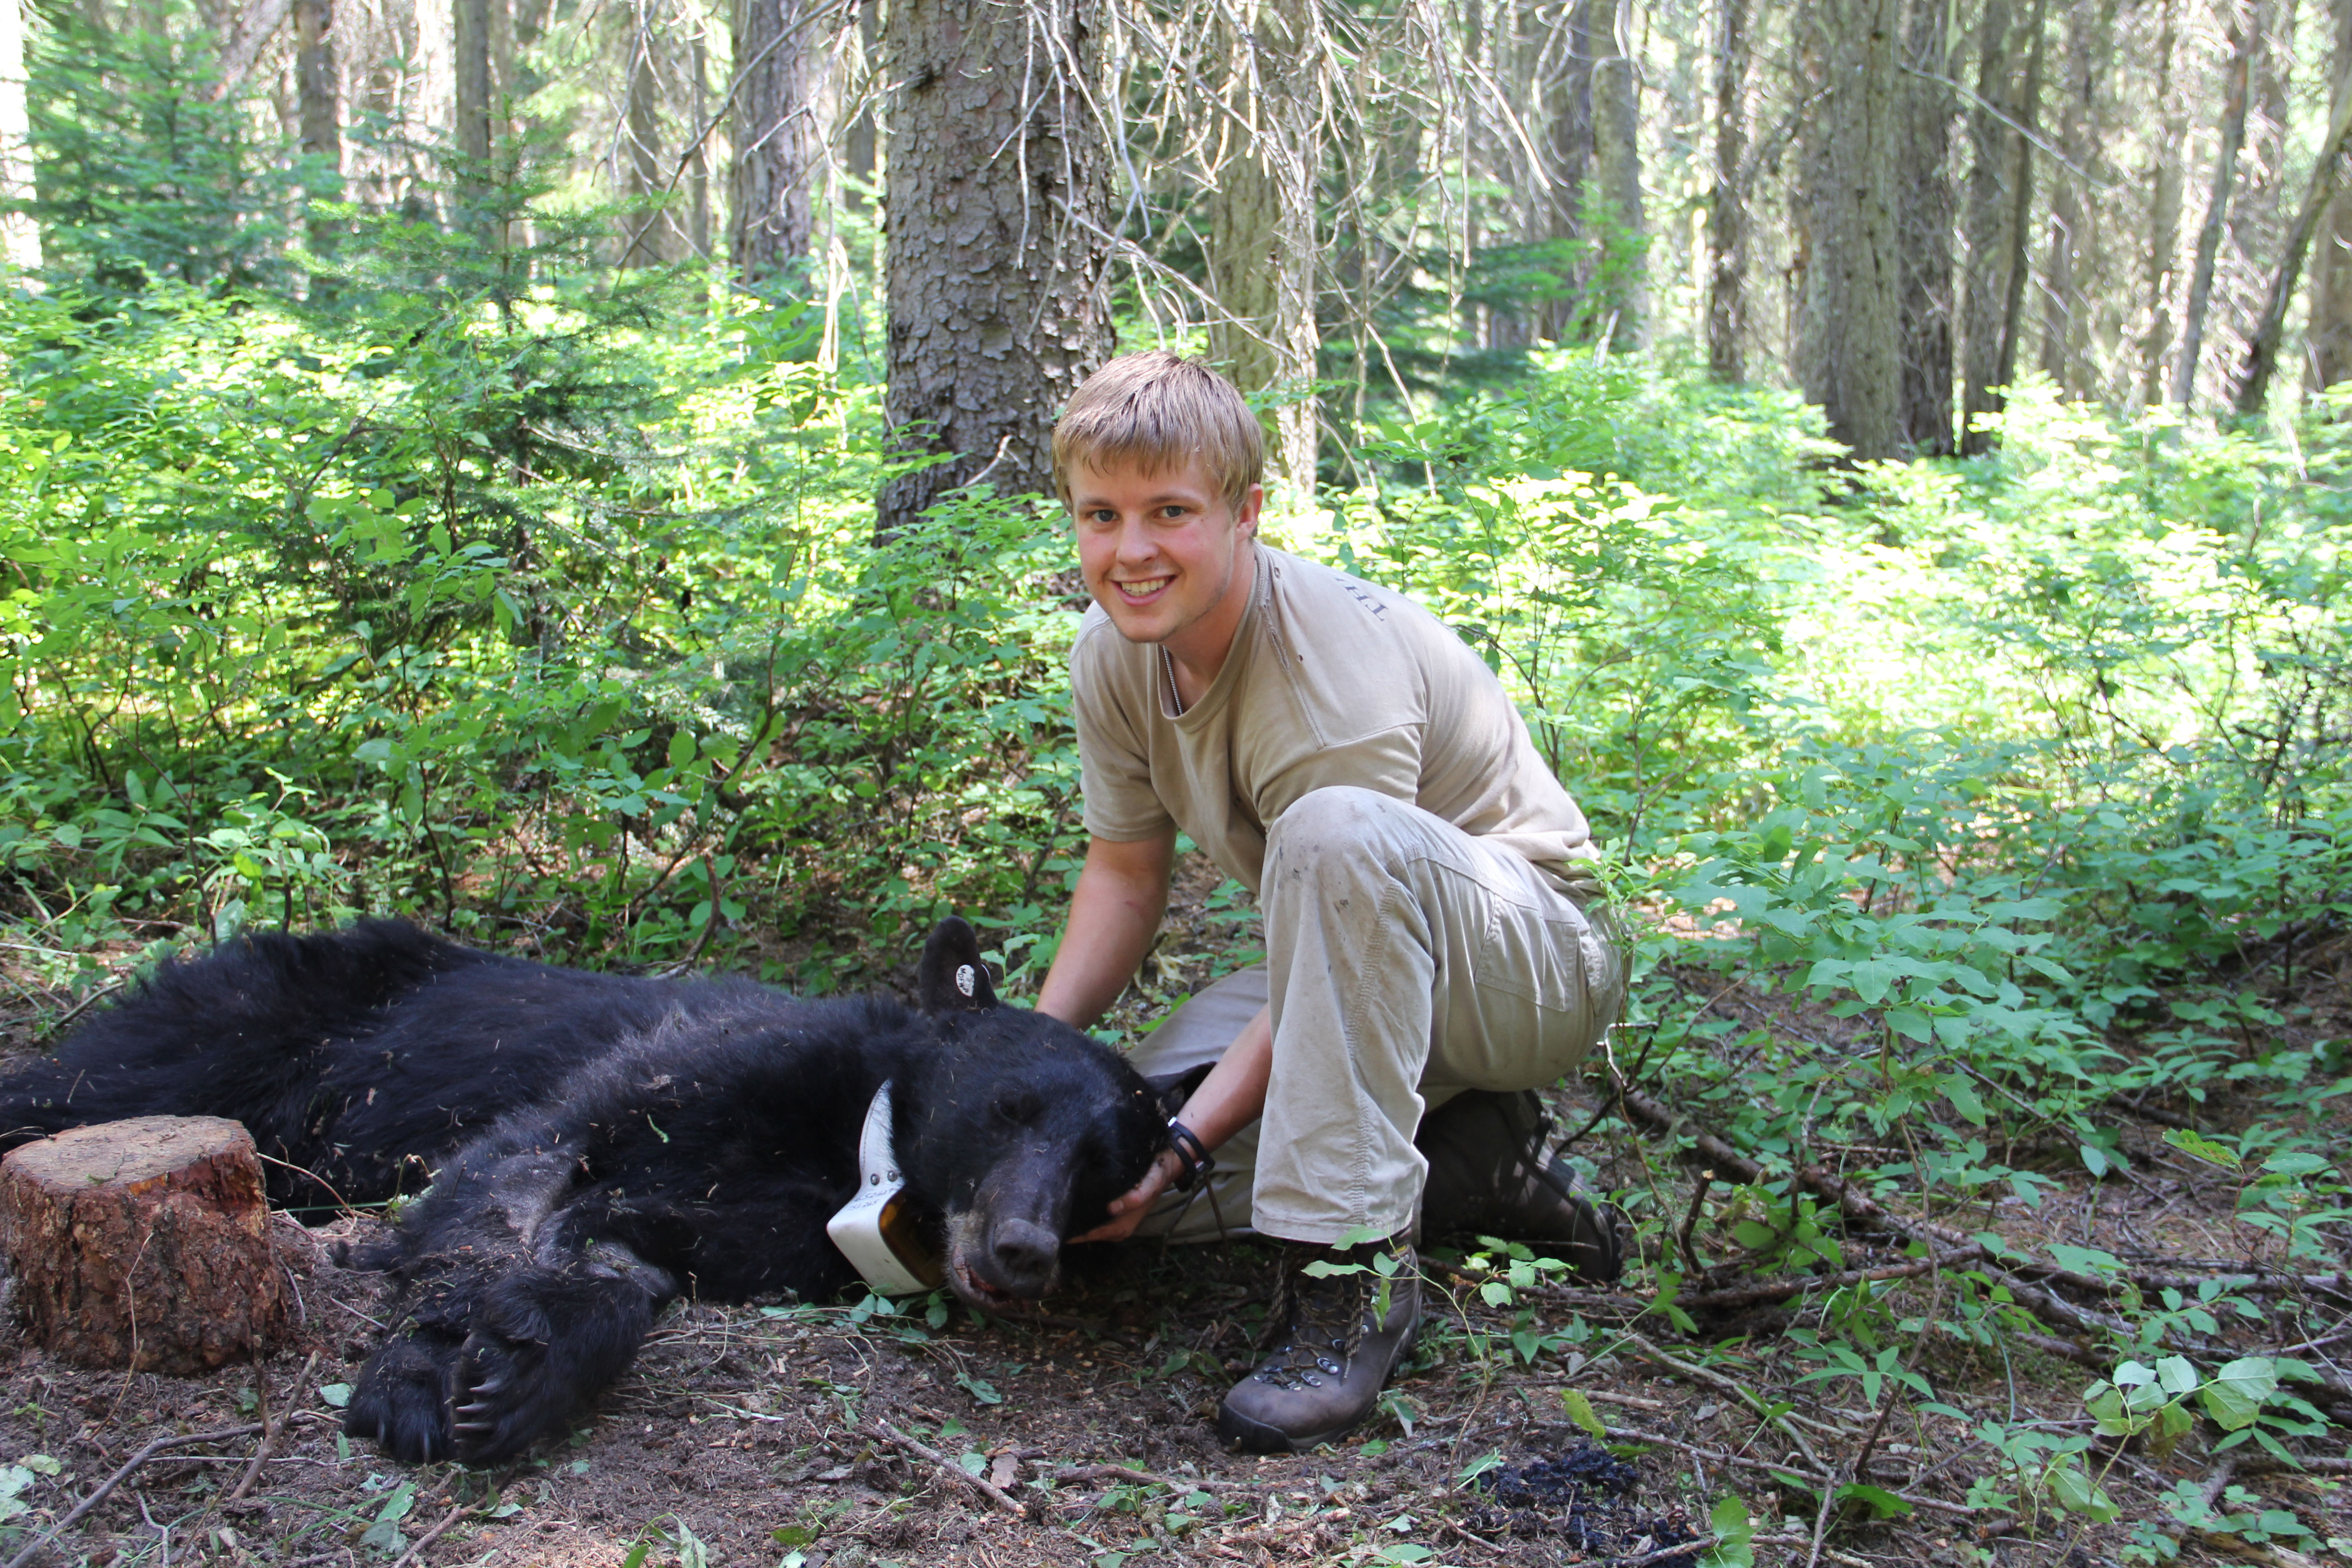 Matt Gould with a black bear captured in Montana.